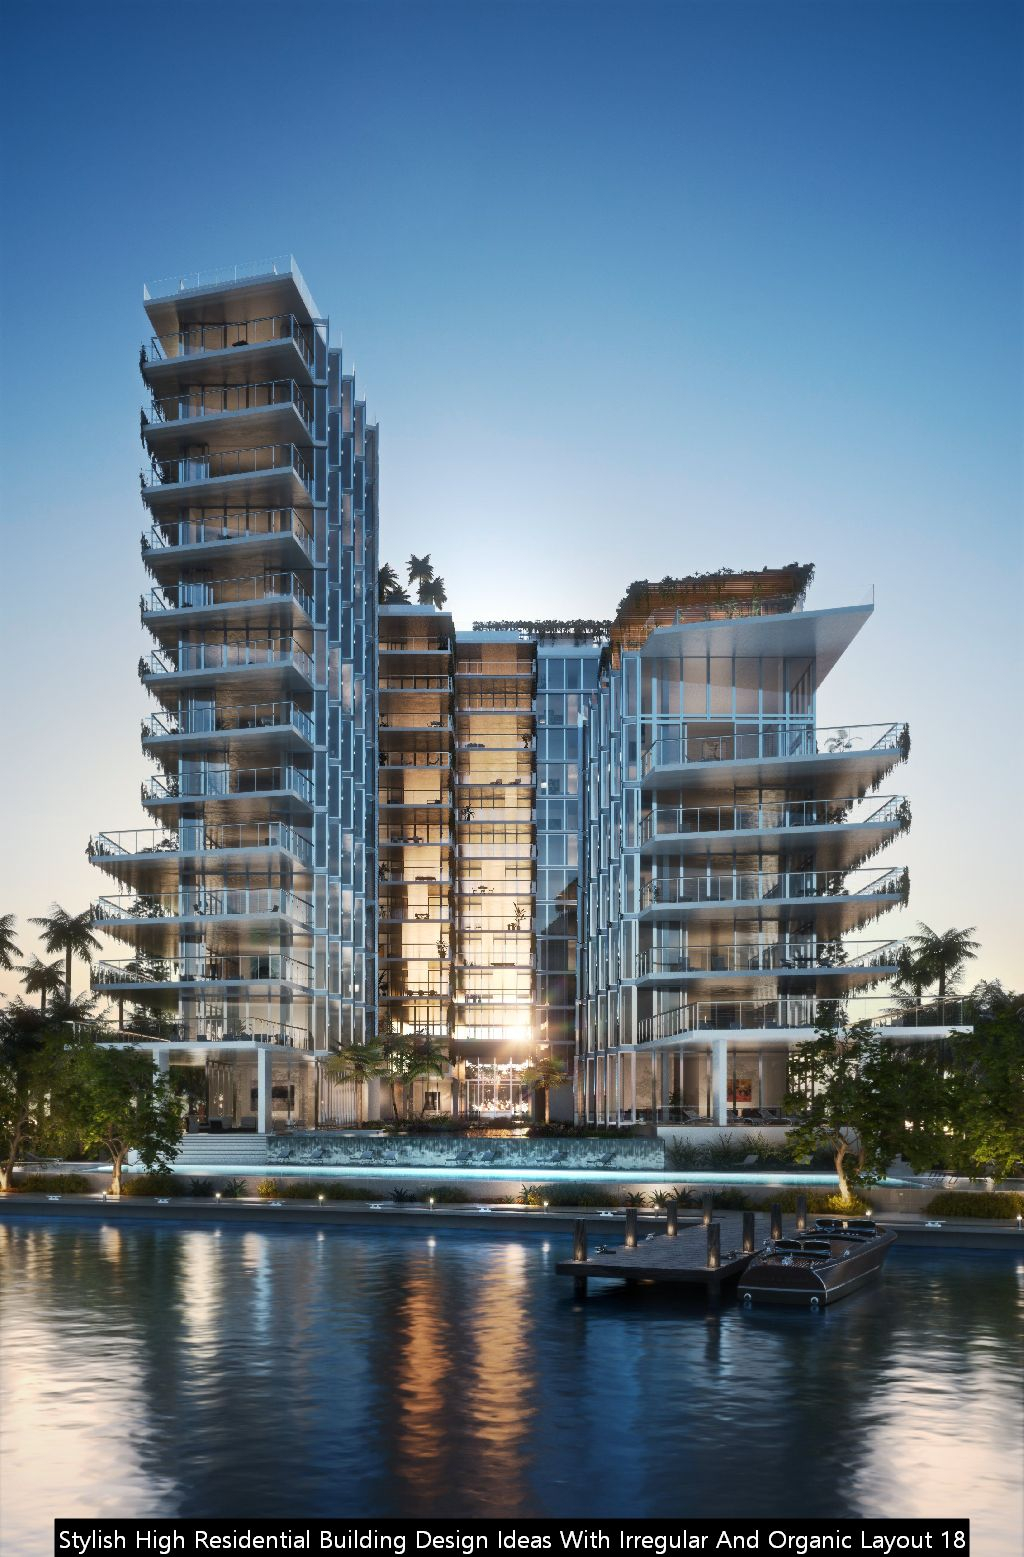 Stylish High Residential Building Design Ideas With Irregular And Organic Layout 18